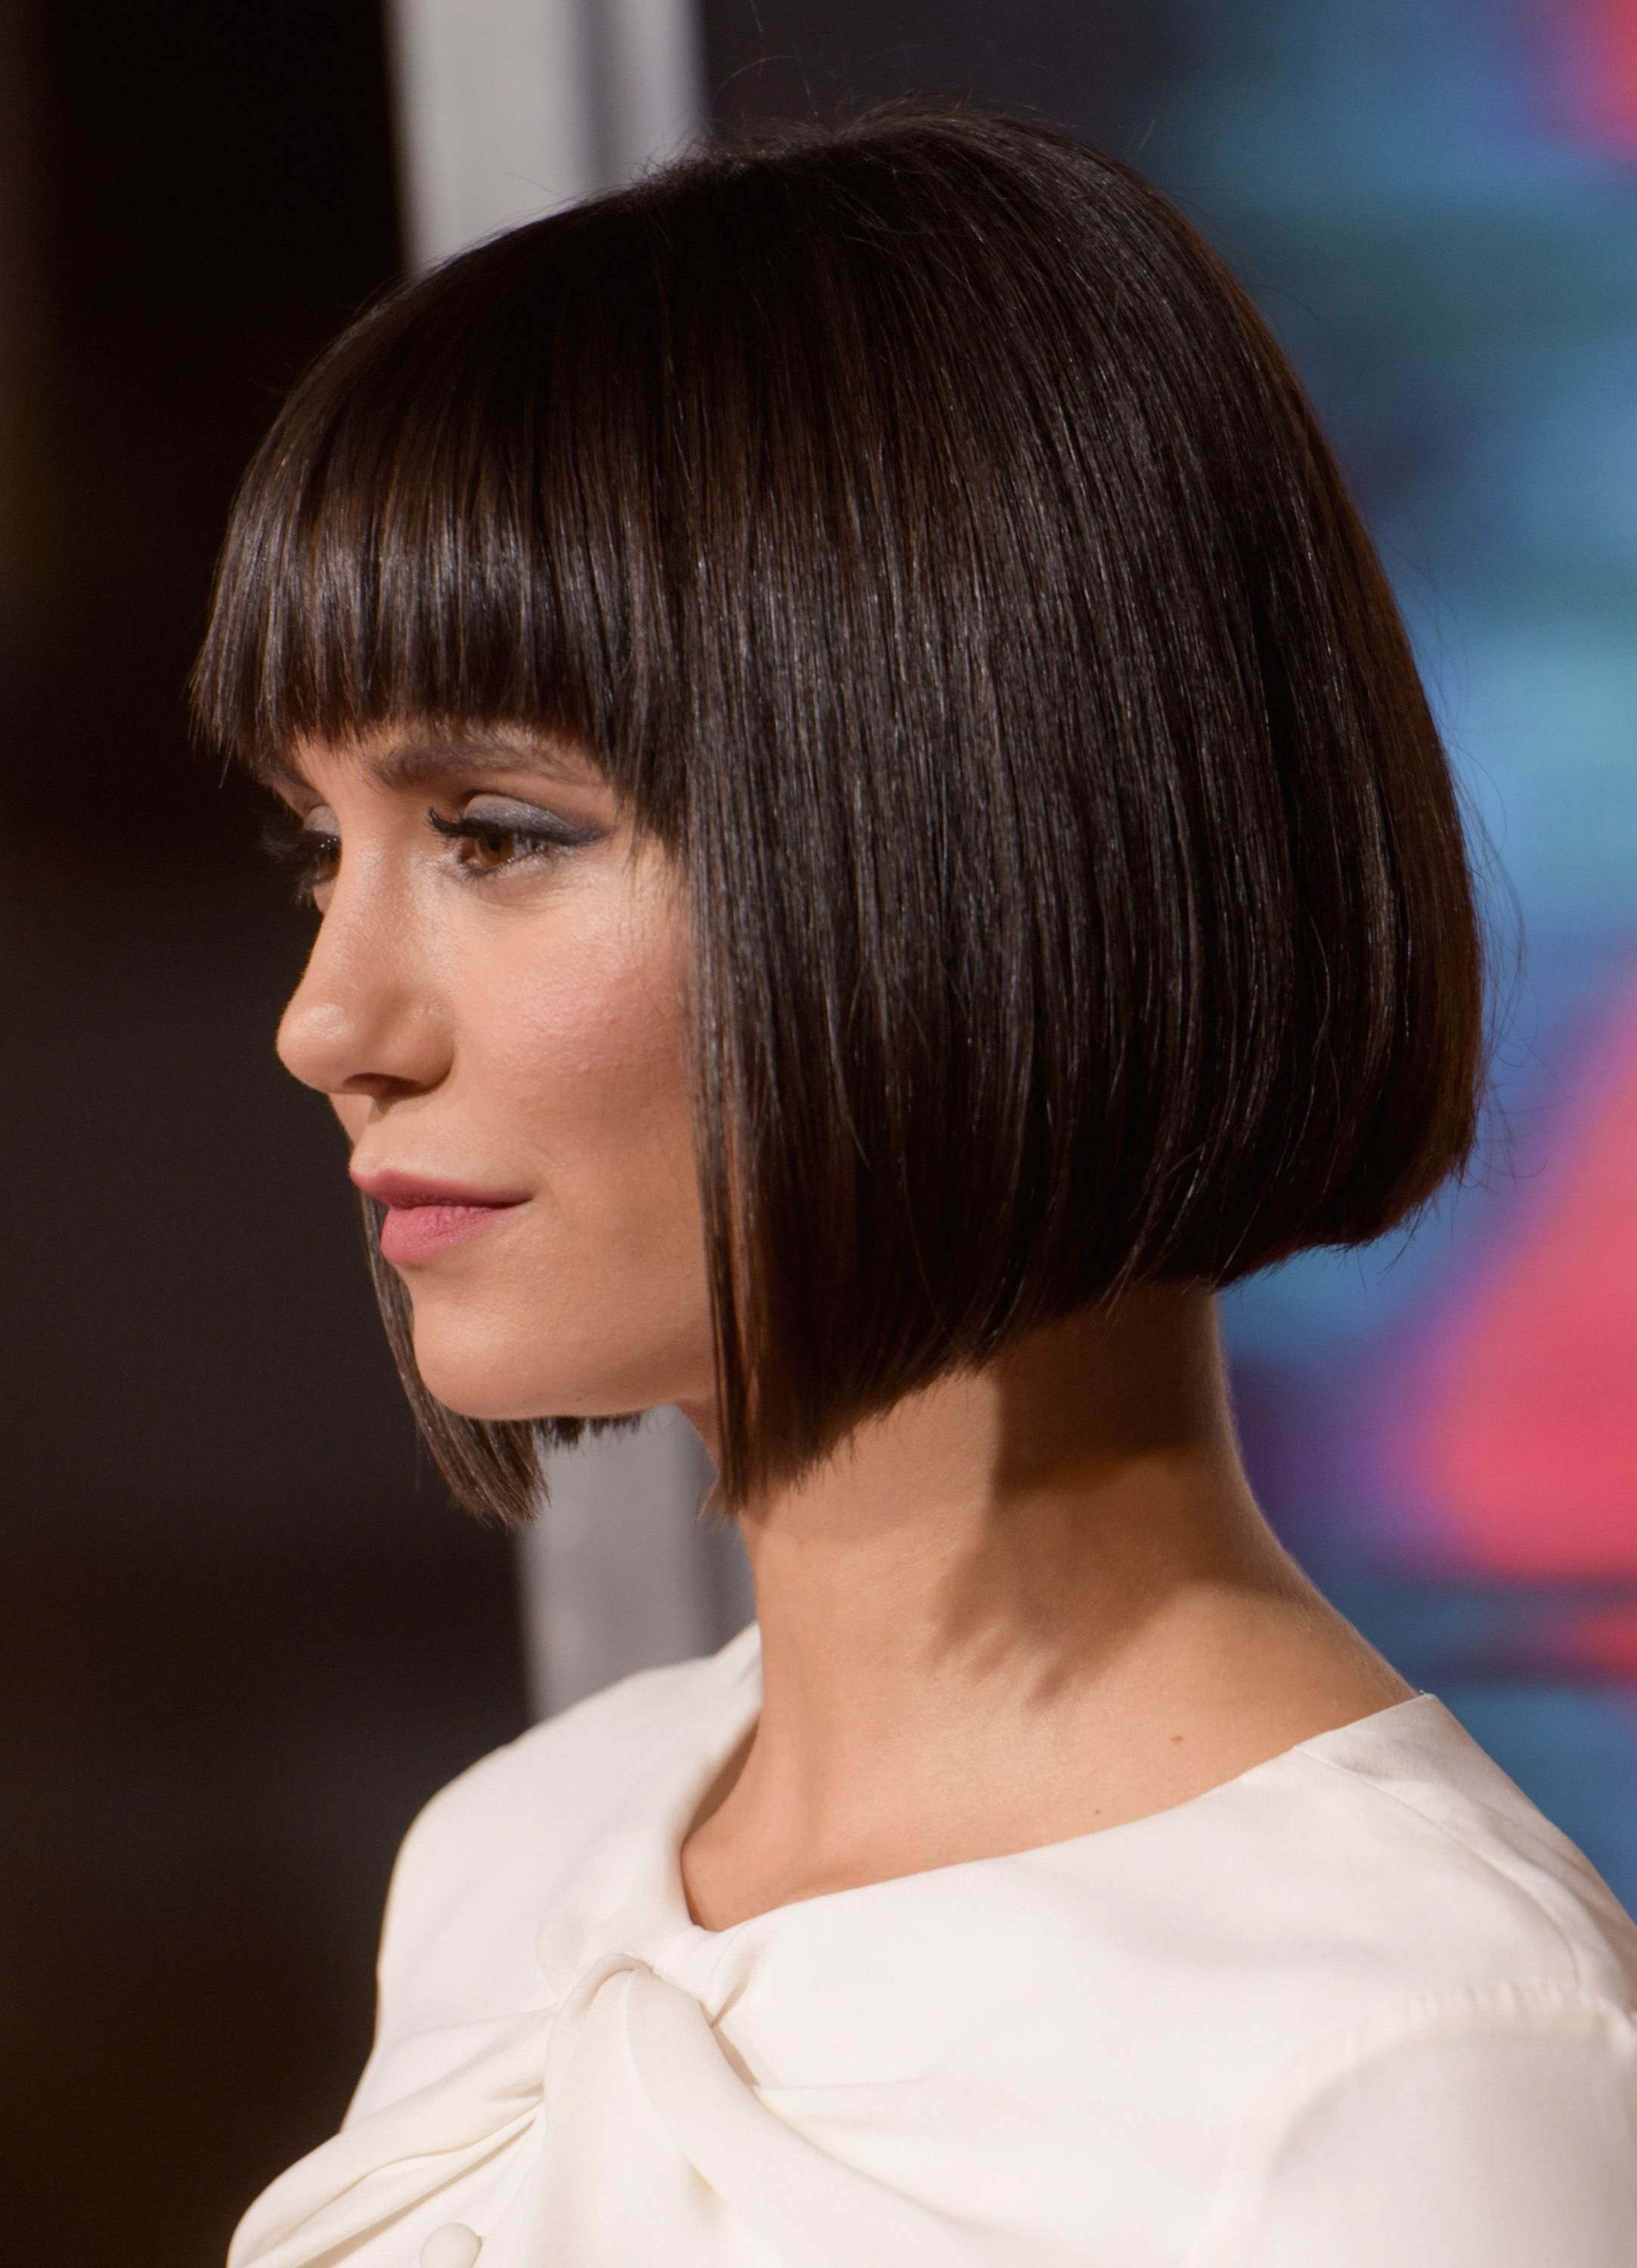 70 Best Bob Styles Of 2019 – Bob Haircuts & Hairstyles For Women Within Well Liked Classic Bob Hairstyles With Side Part (Gallery 9 of 20)